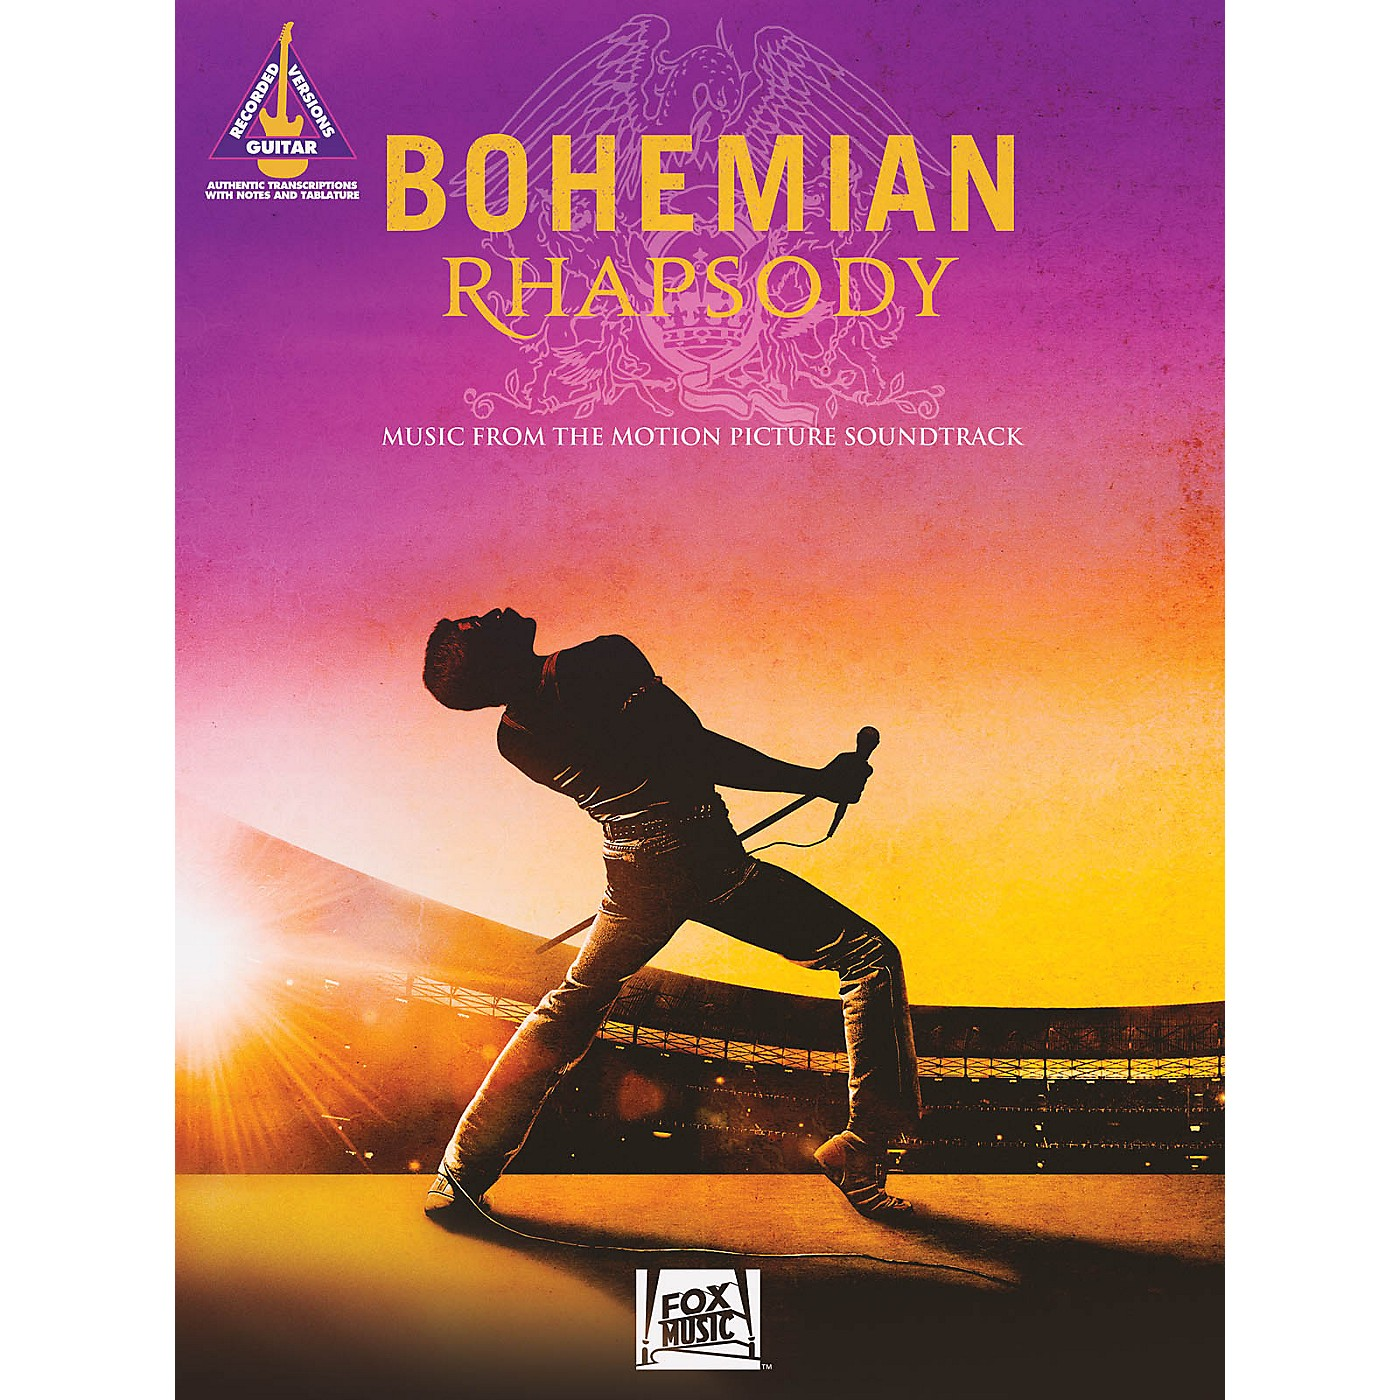 Hal Leonard Bohemian Rhapsody - Music from the Motion Picture Soundtrack Guitar Tab Songbook by Queen thumbnail